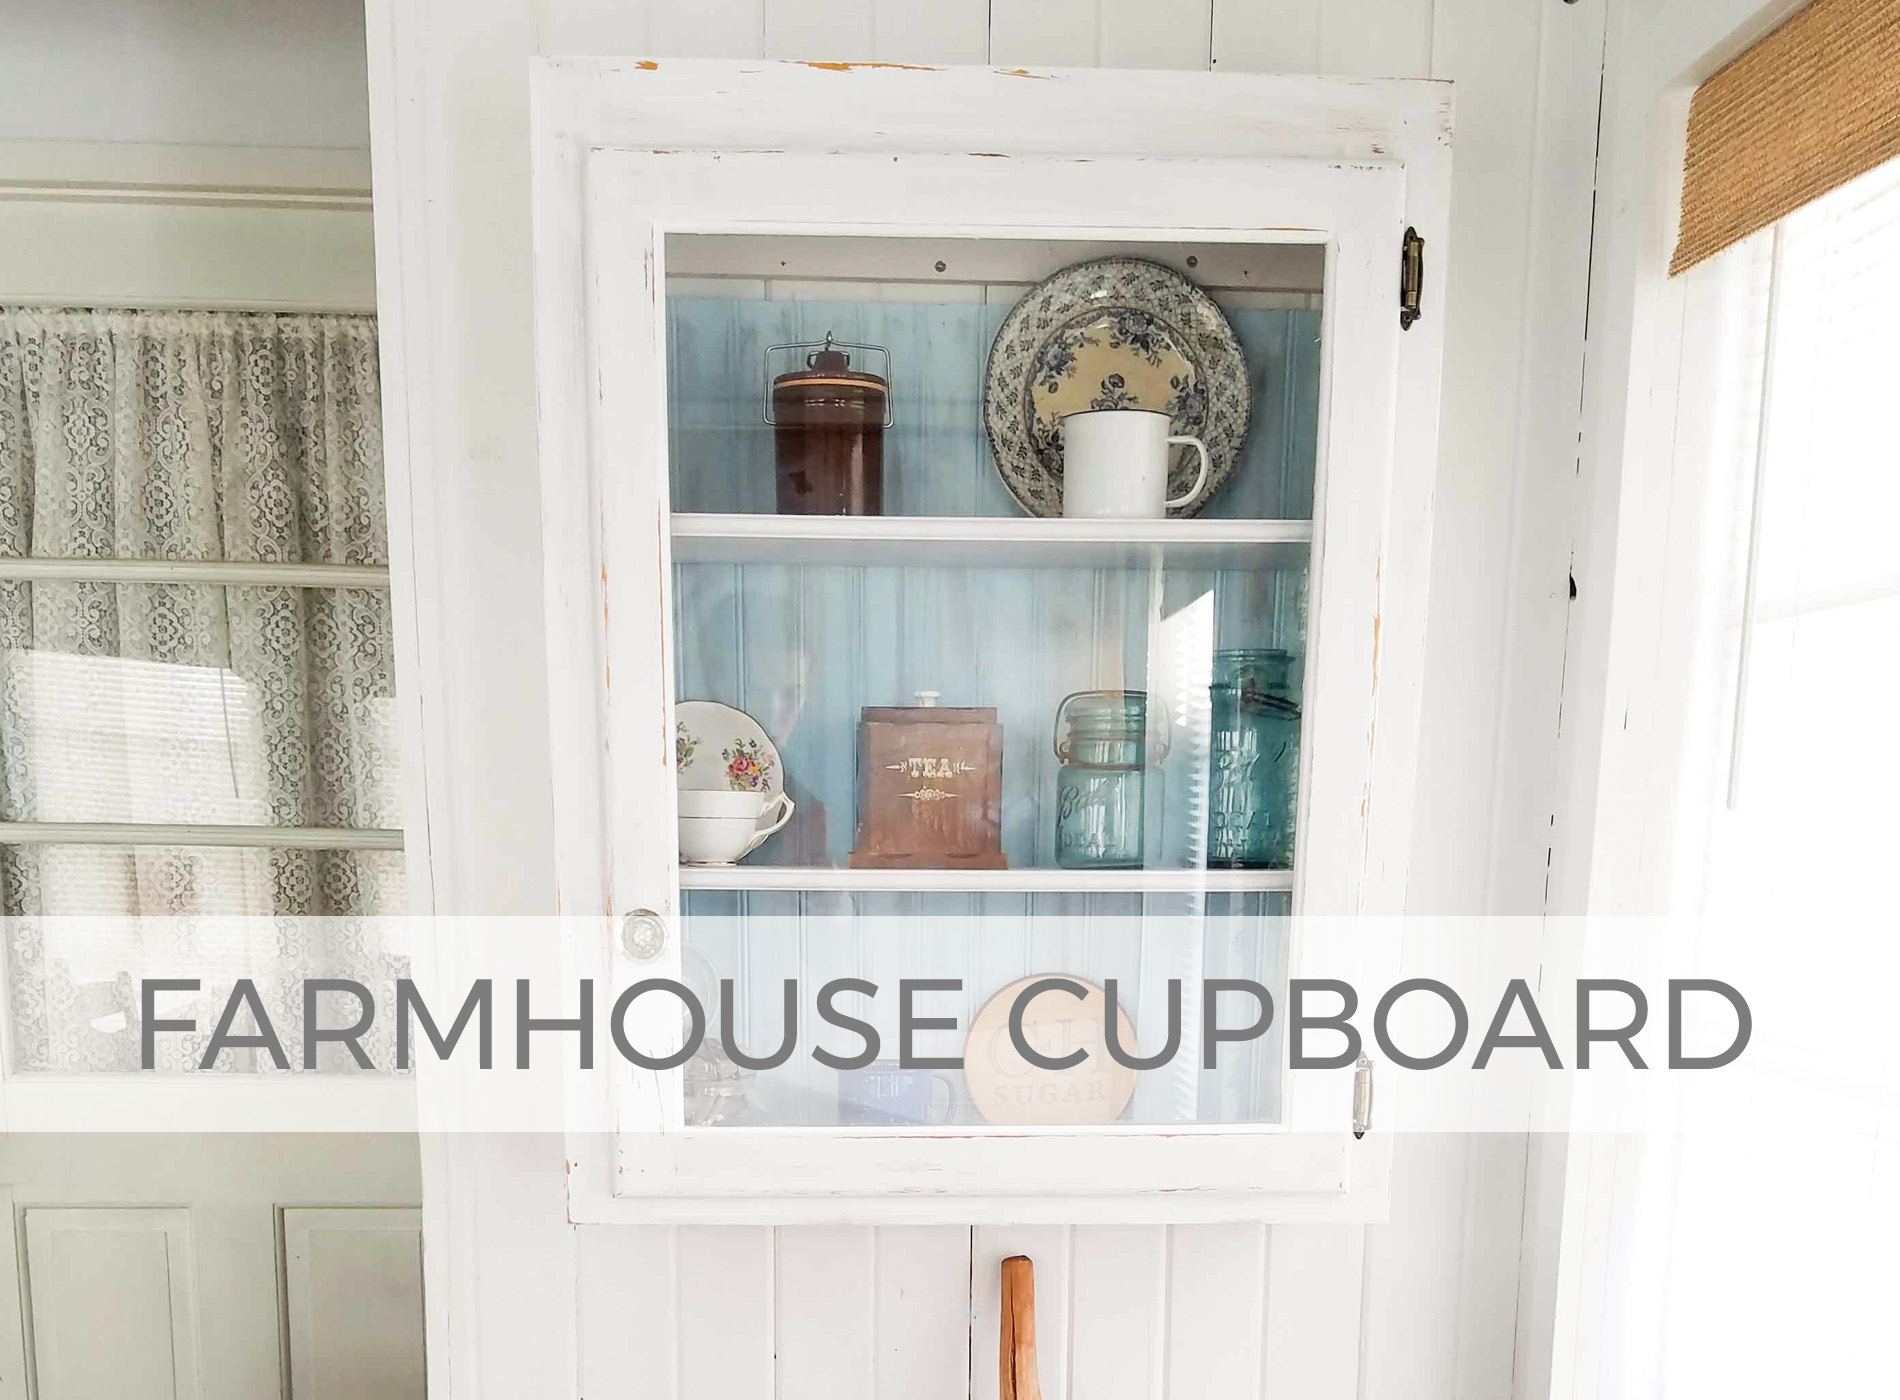 Farmhouse Cupboard Updated by Larissa of Prodigal Pieces | prodigalpieces.com